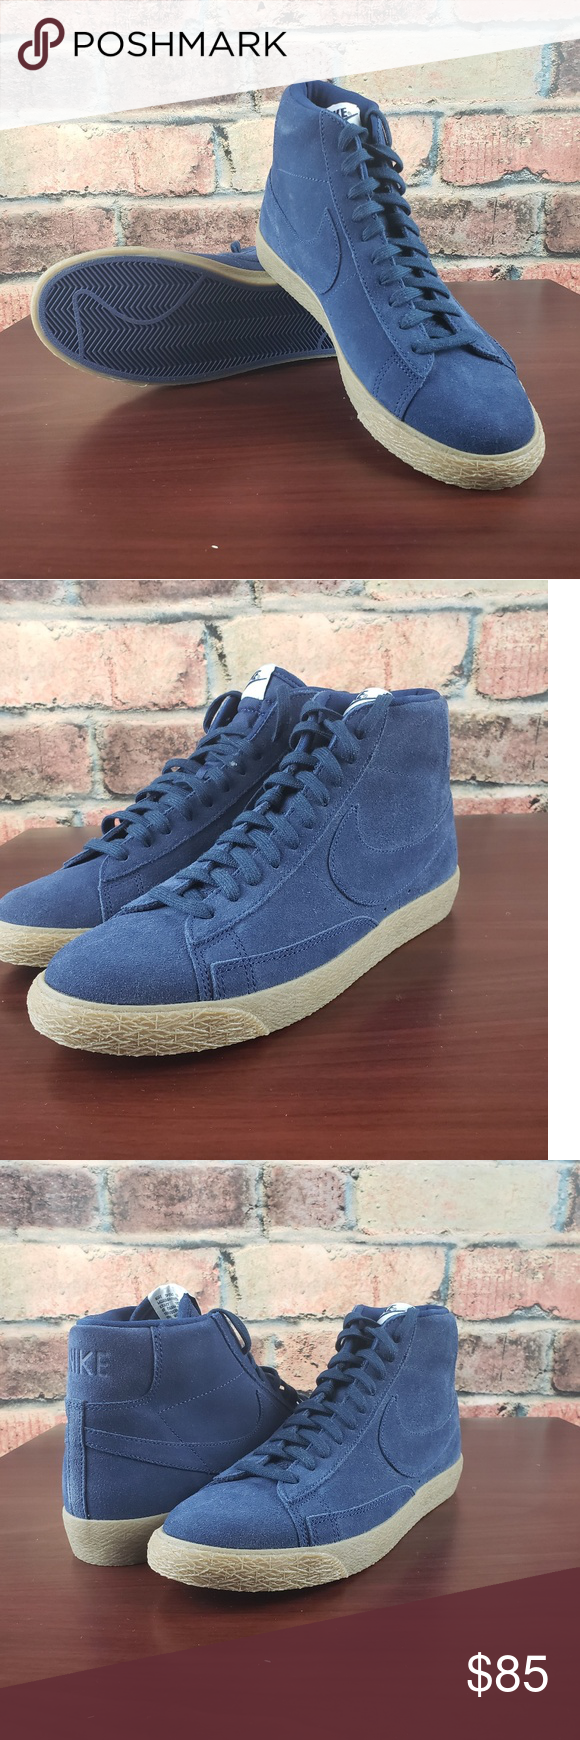 buy online 26ec0 88bbb  New Nike Blazer Mid Premium Binary Blue Brand new with box with no lid.  This Nike Blazer Mid features a Blue suede upper upper with matching laces,  ...